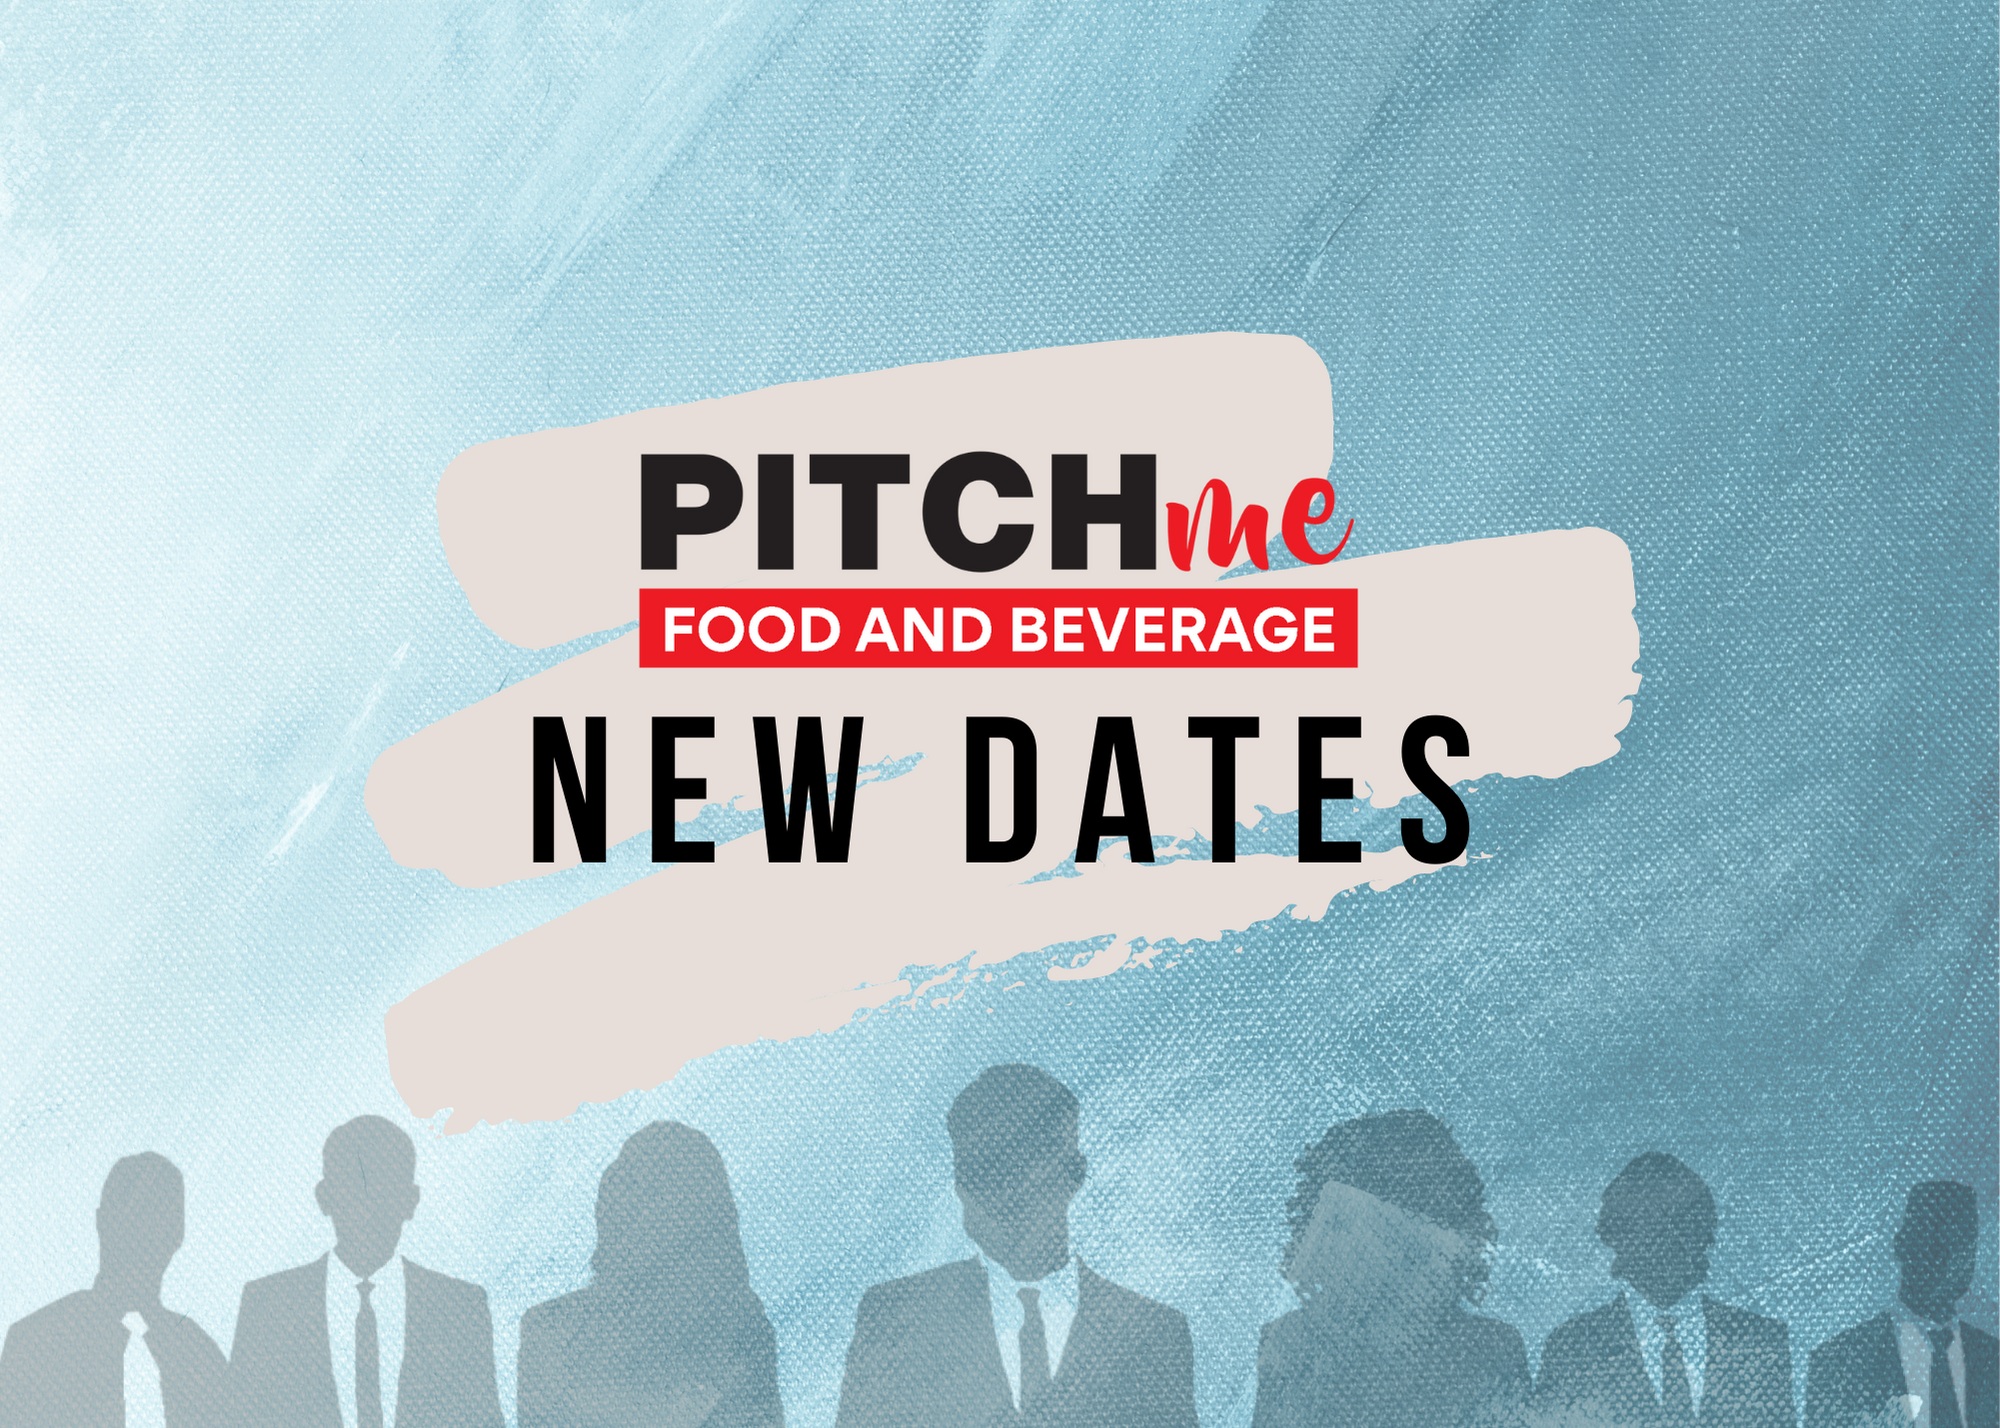 New Dates for PITCHme Food & Beverage